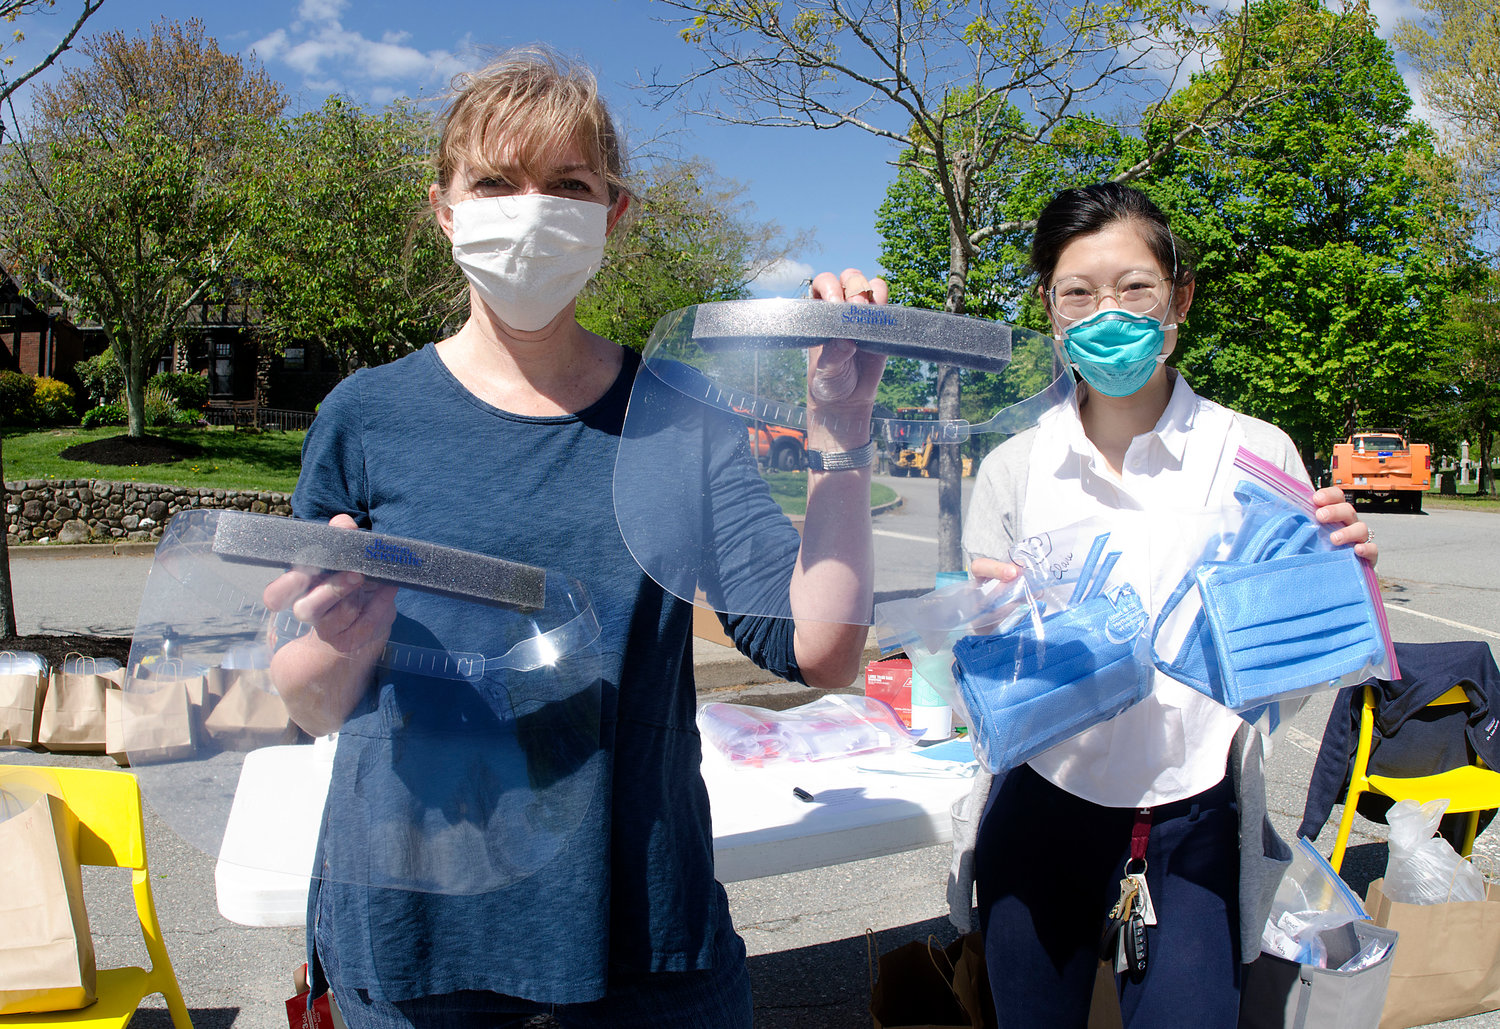 Dr. Lisa Denny of Barrington Family Medicine (left) and fourth-year Brown medical student Vivian Chan Li, of Central Falls, hand out face shields, masks and other various PPE to medical offices and nursing homes on Saturday behind the Barrington Town Hall.